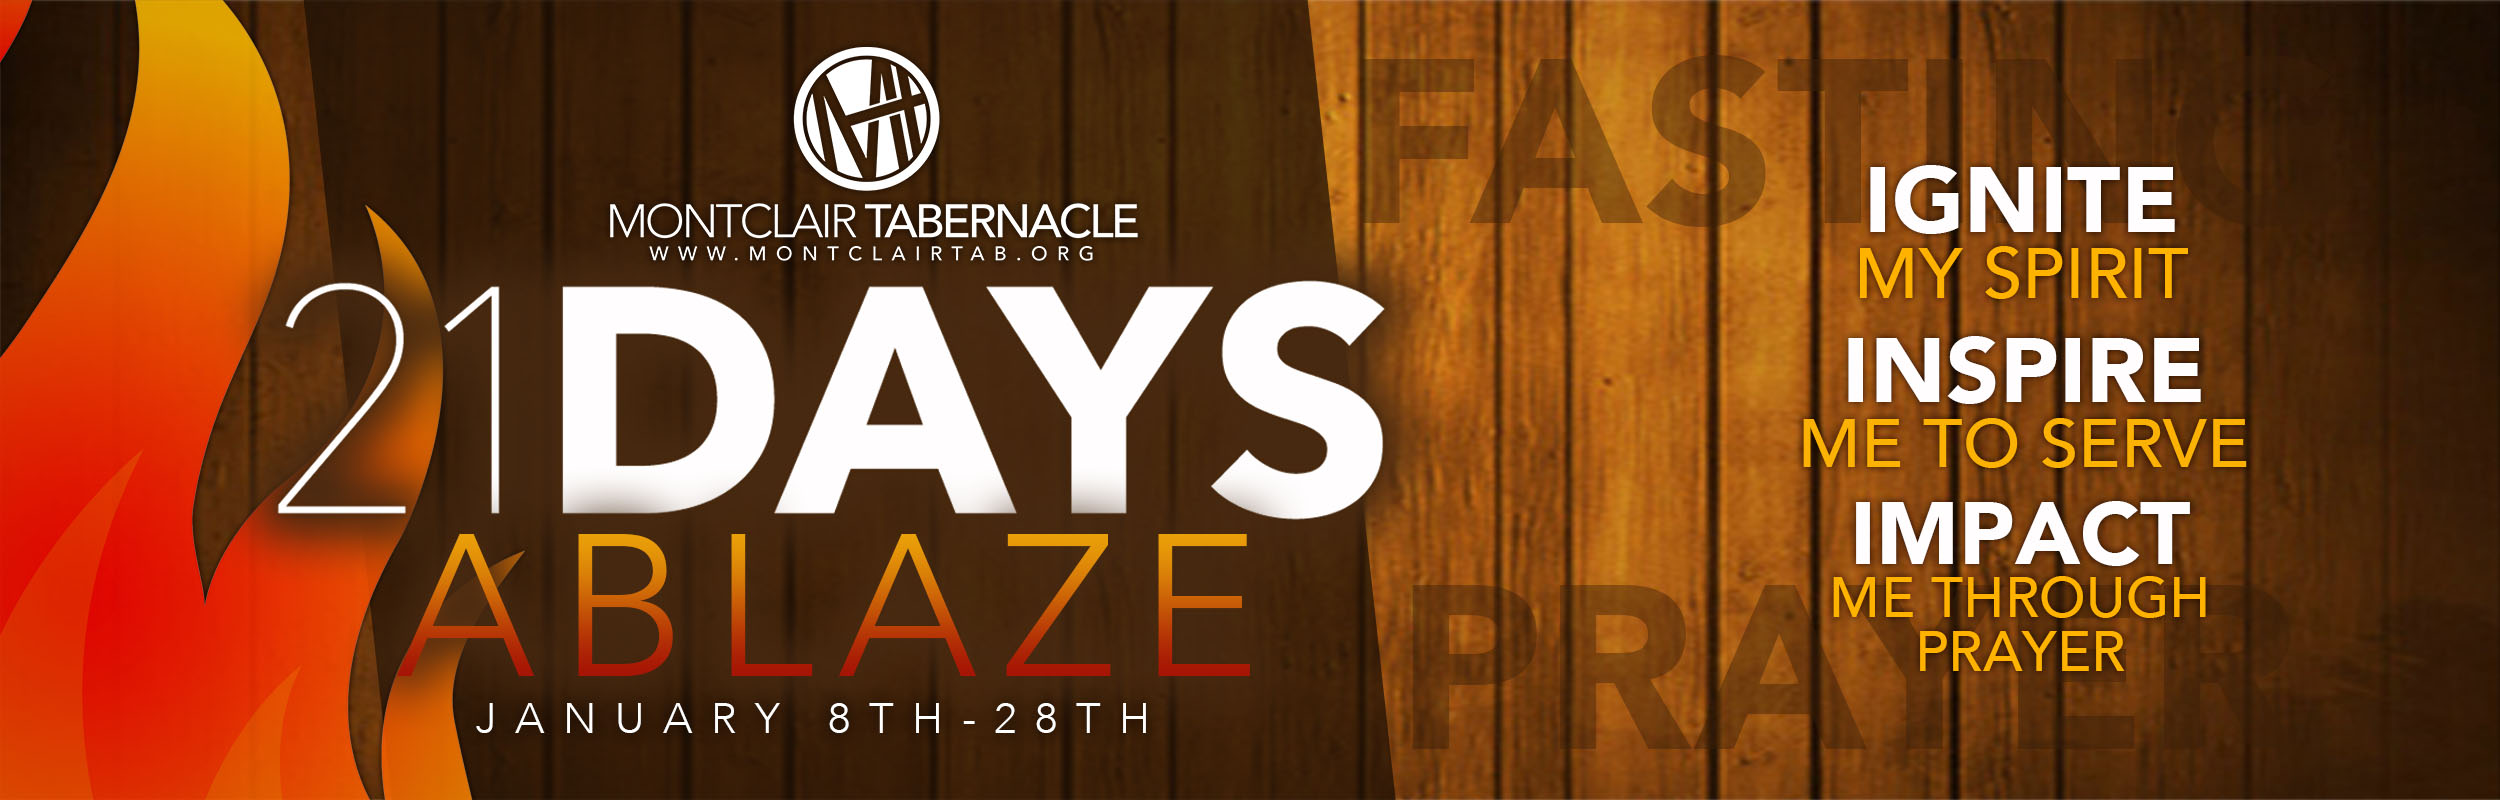 21 days ablaze 2018